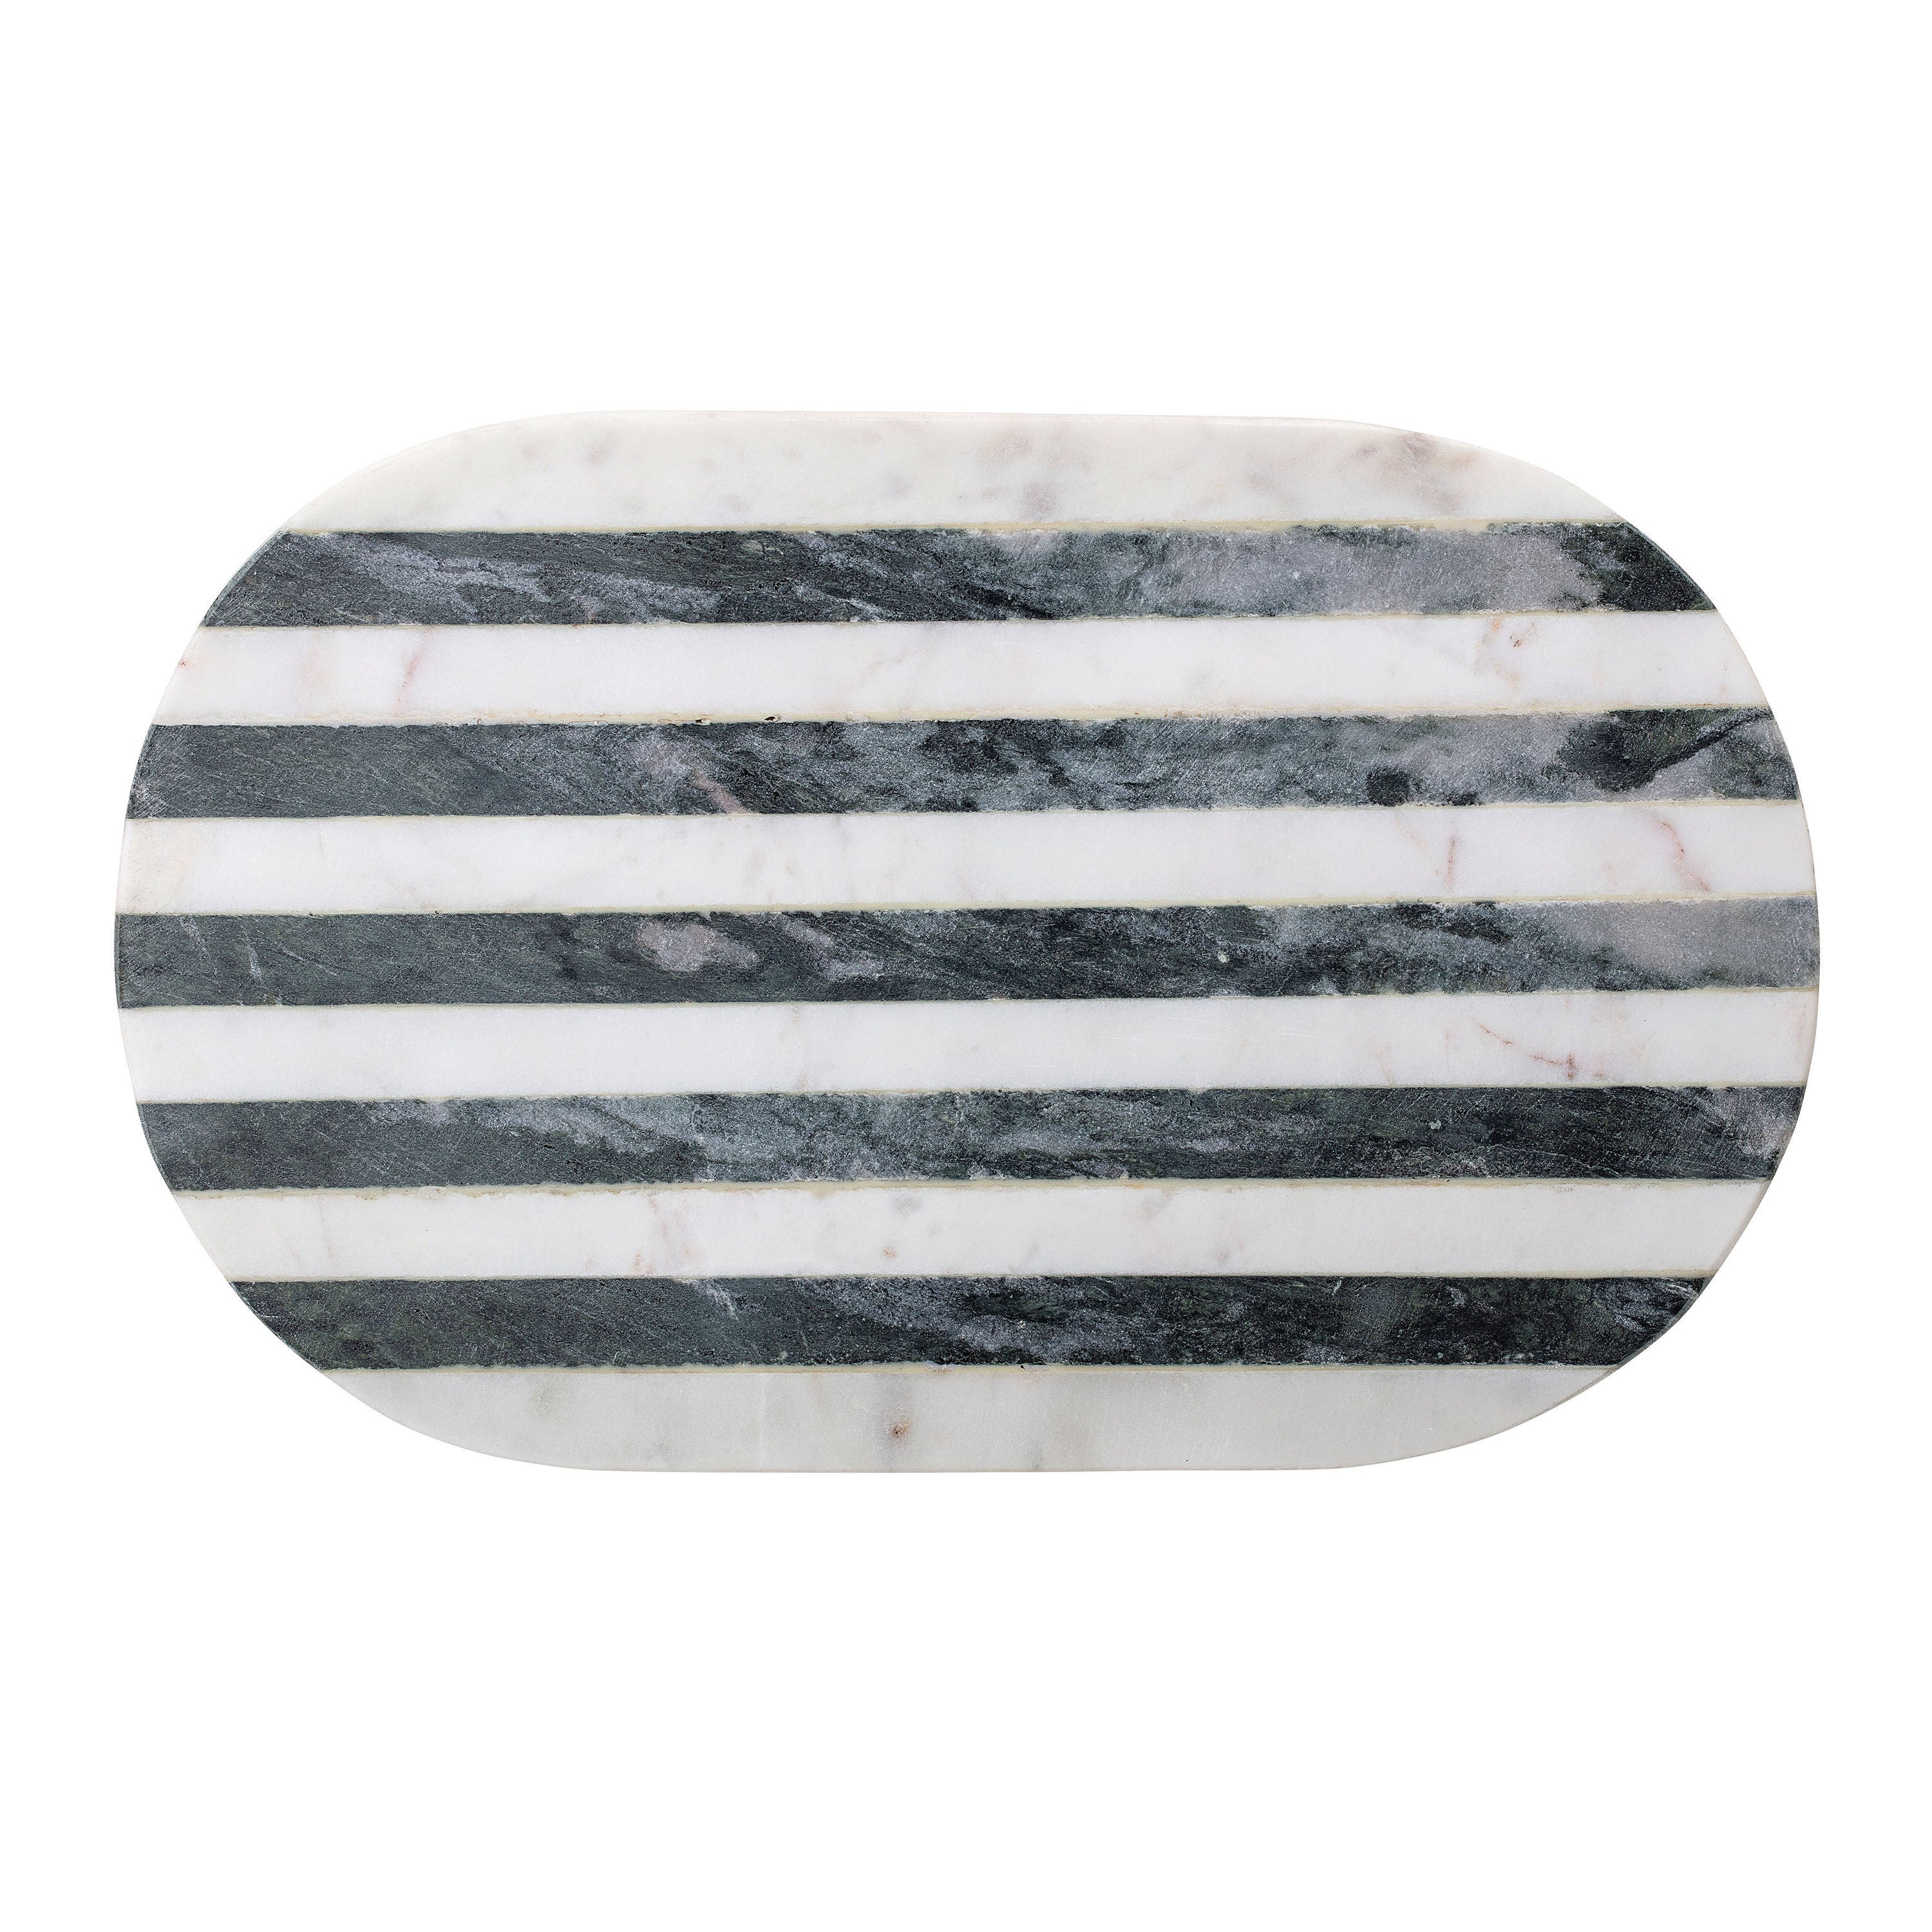 Soho Black + White Striped Marble Oval Cutting Board